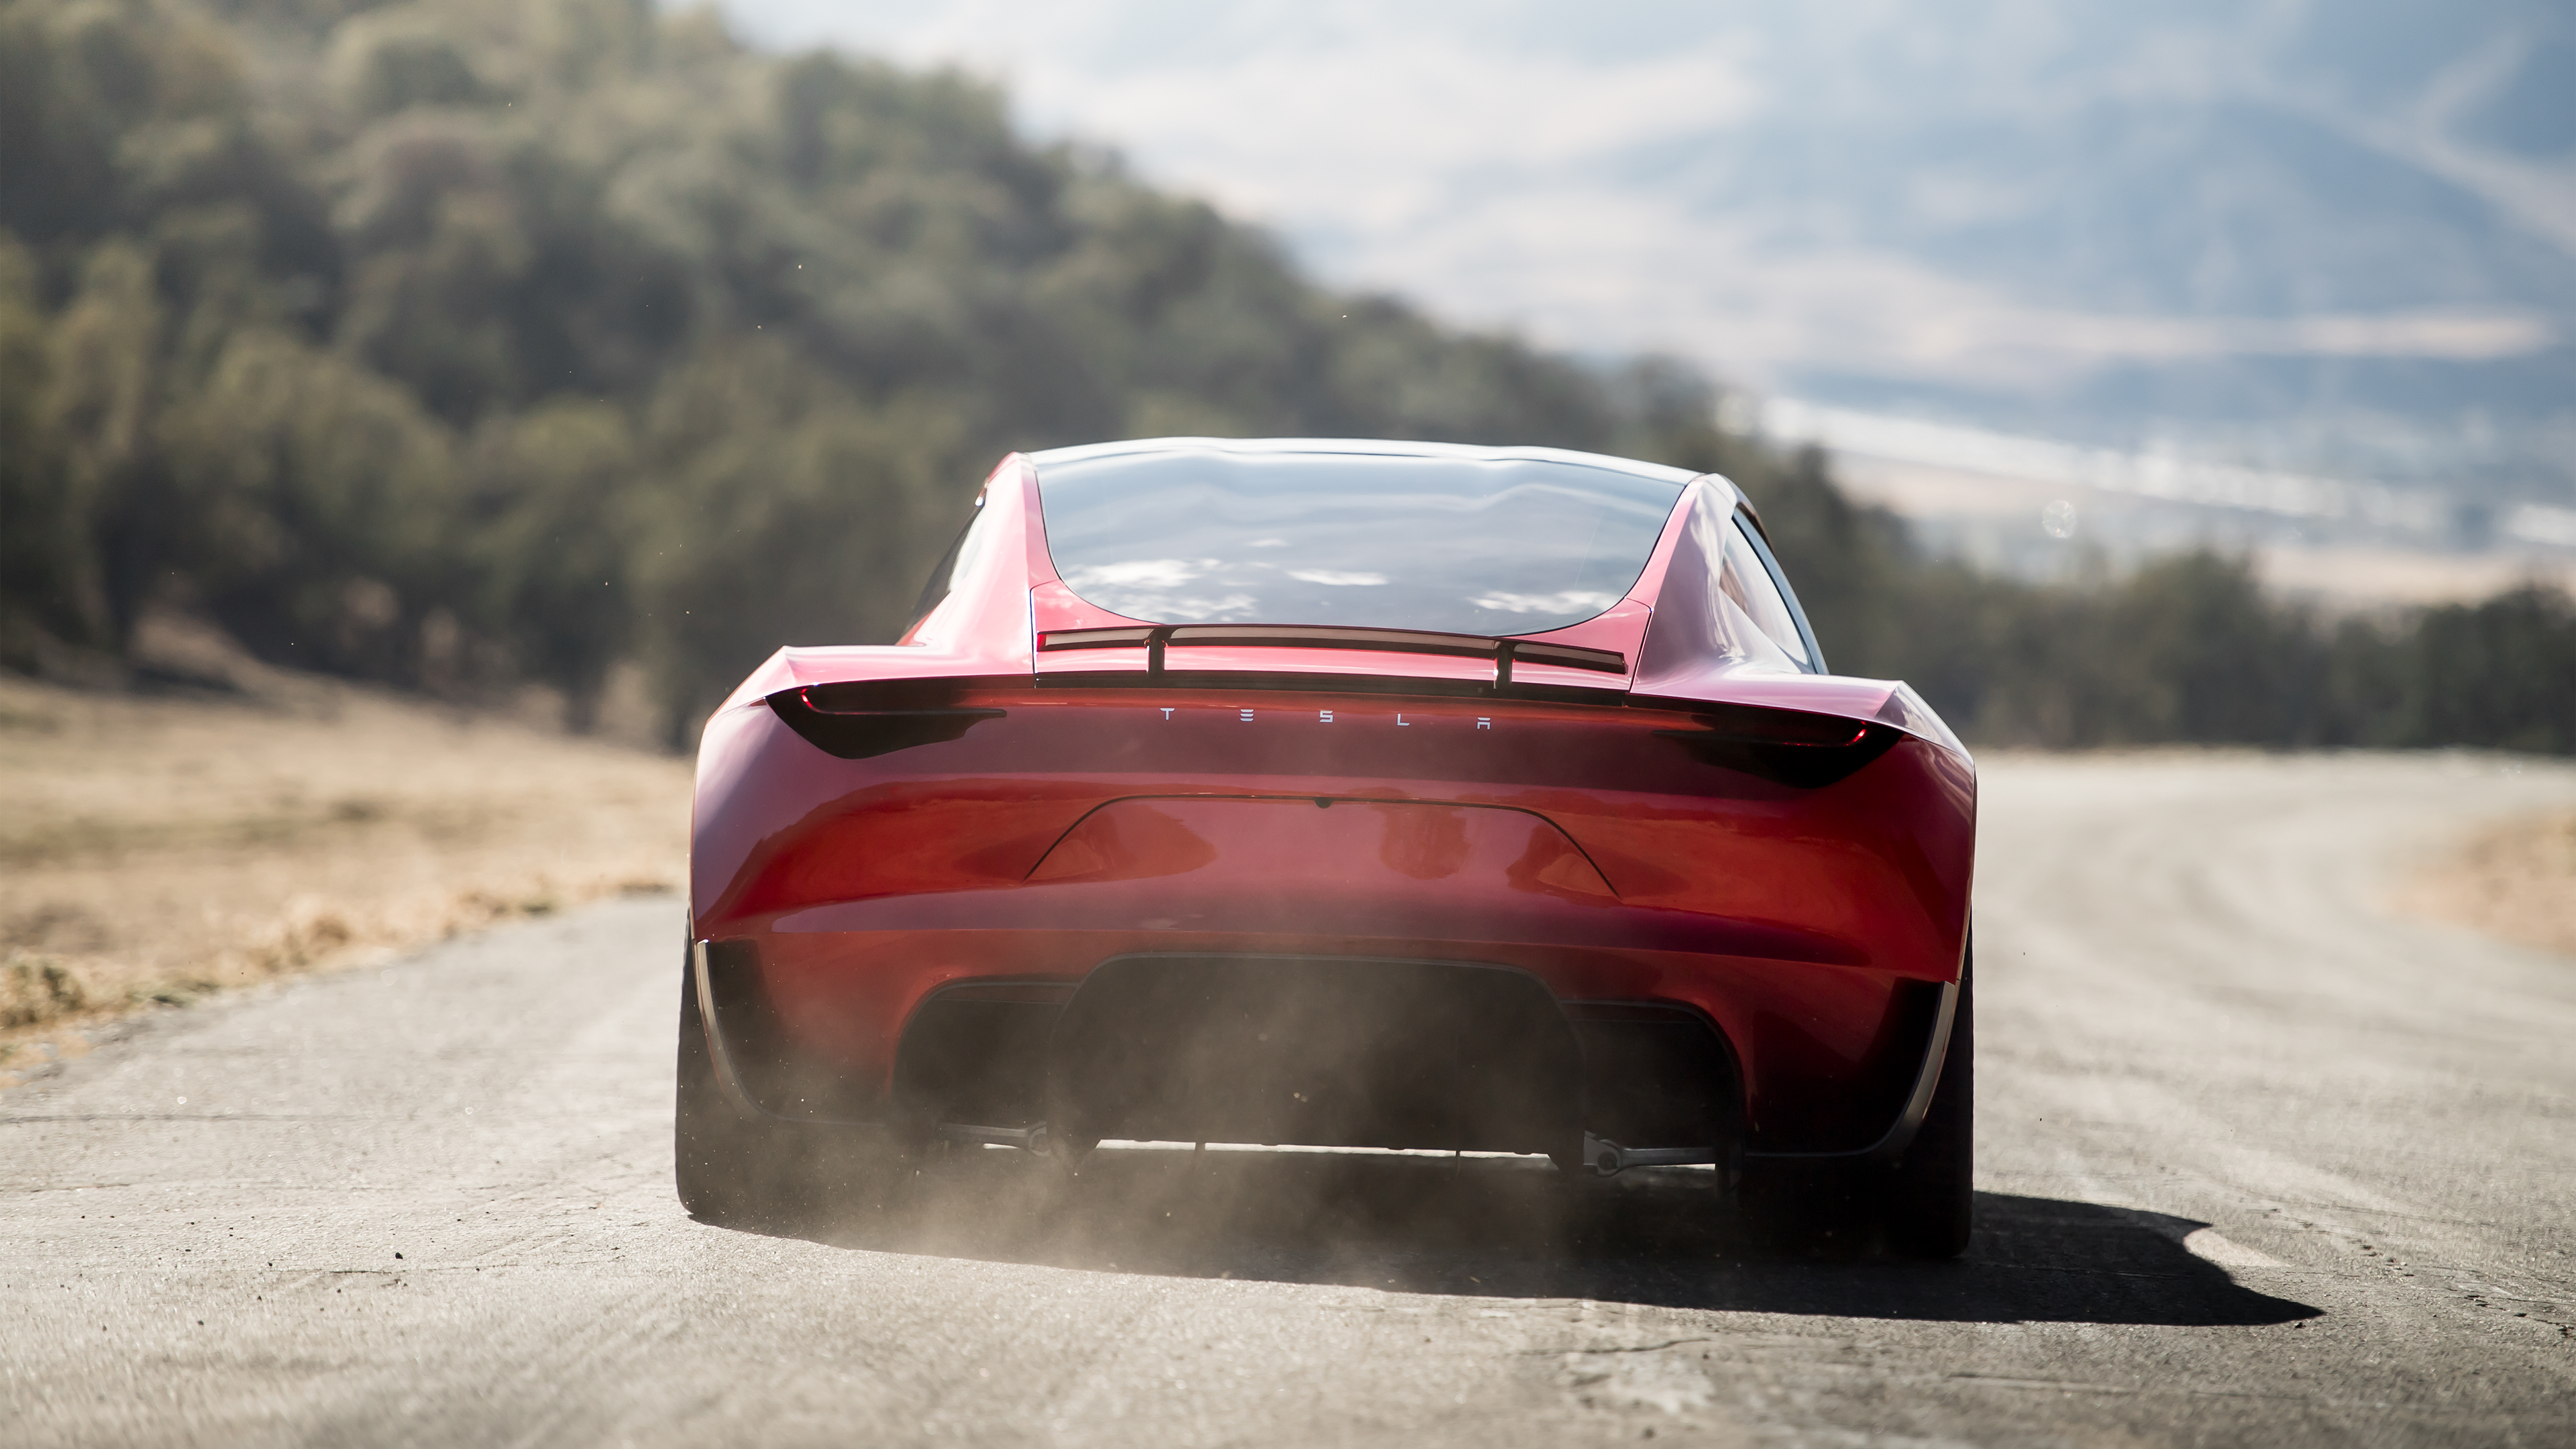 Tesla's Next-Gen Roadster: A (speculative) technical look at